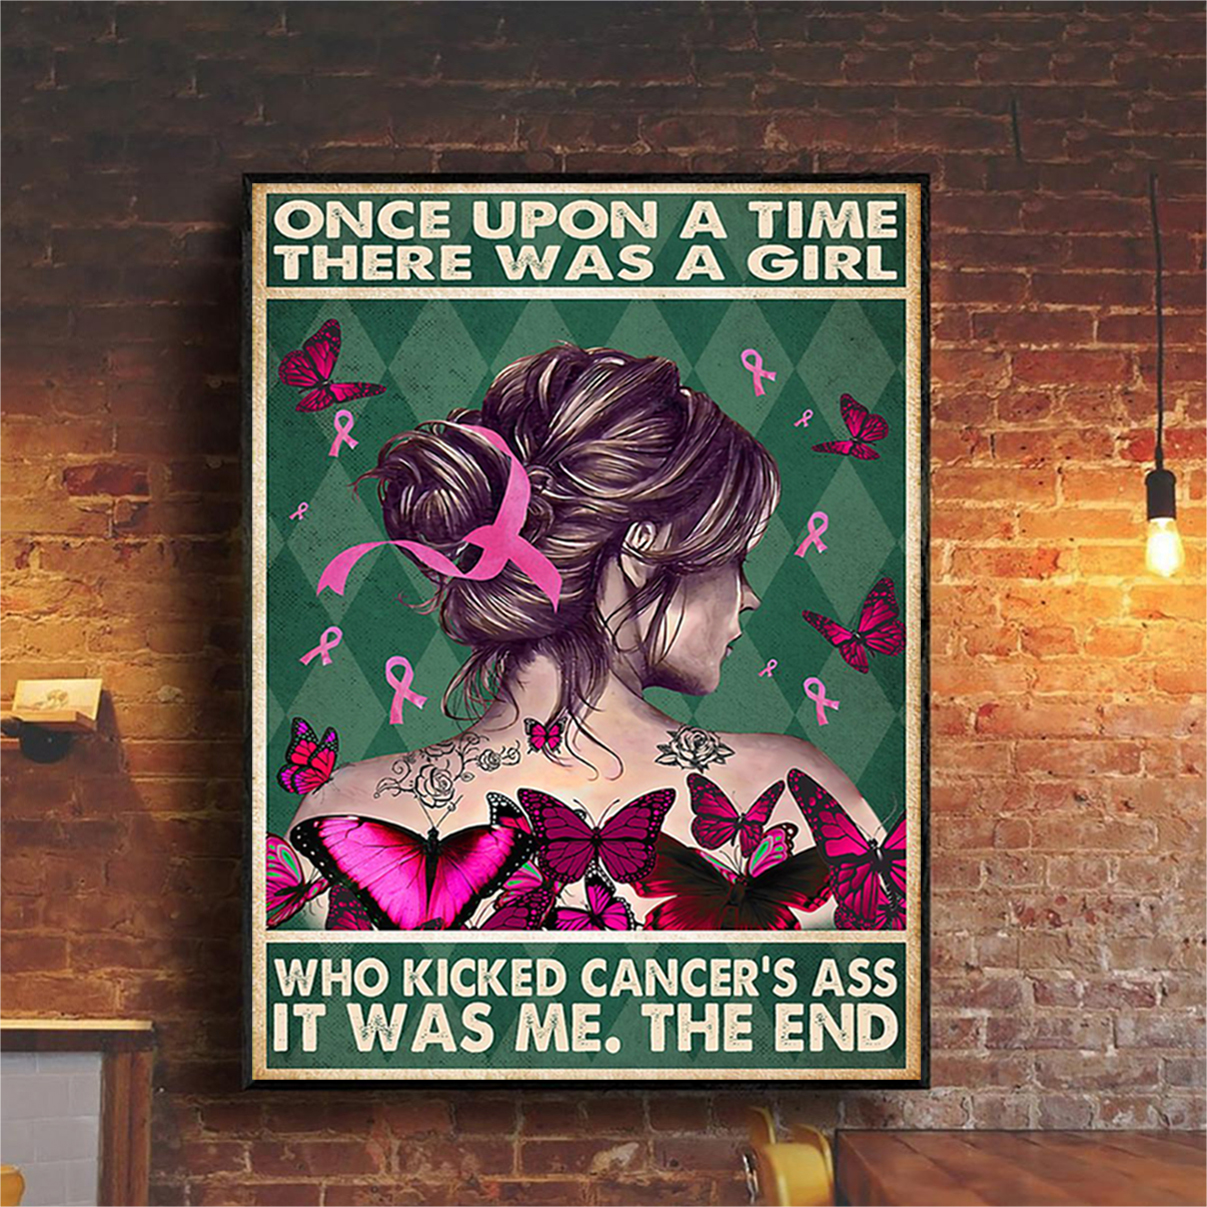 Once upon a time there was a girl who kicked cancer's ass poster A1